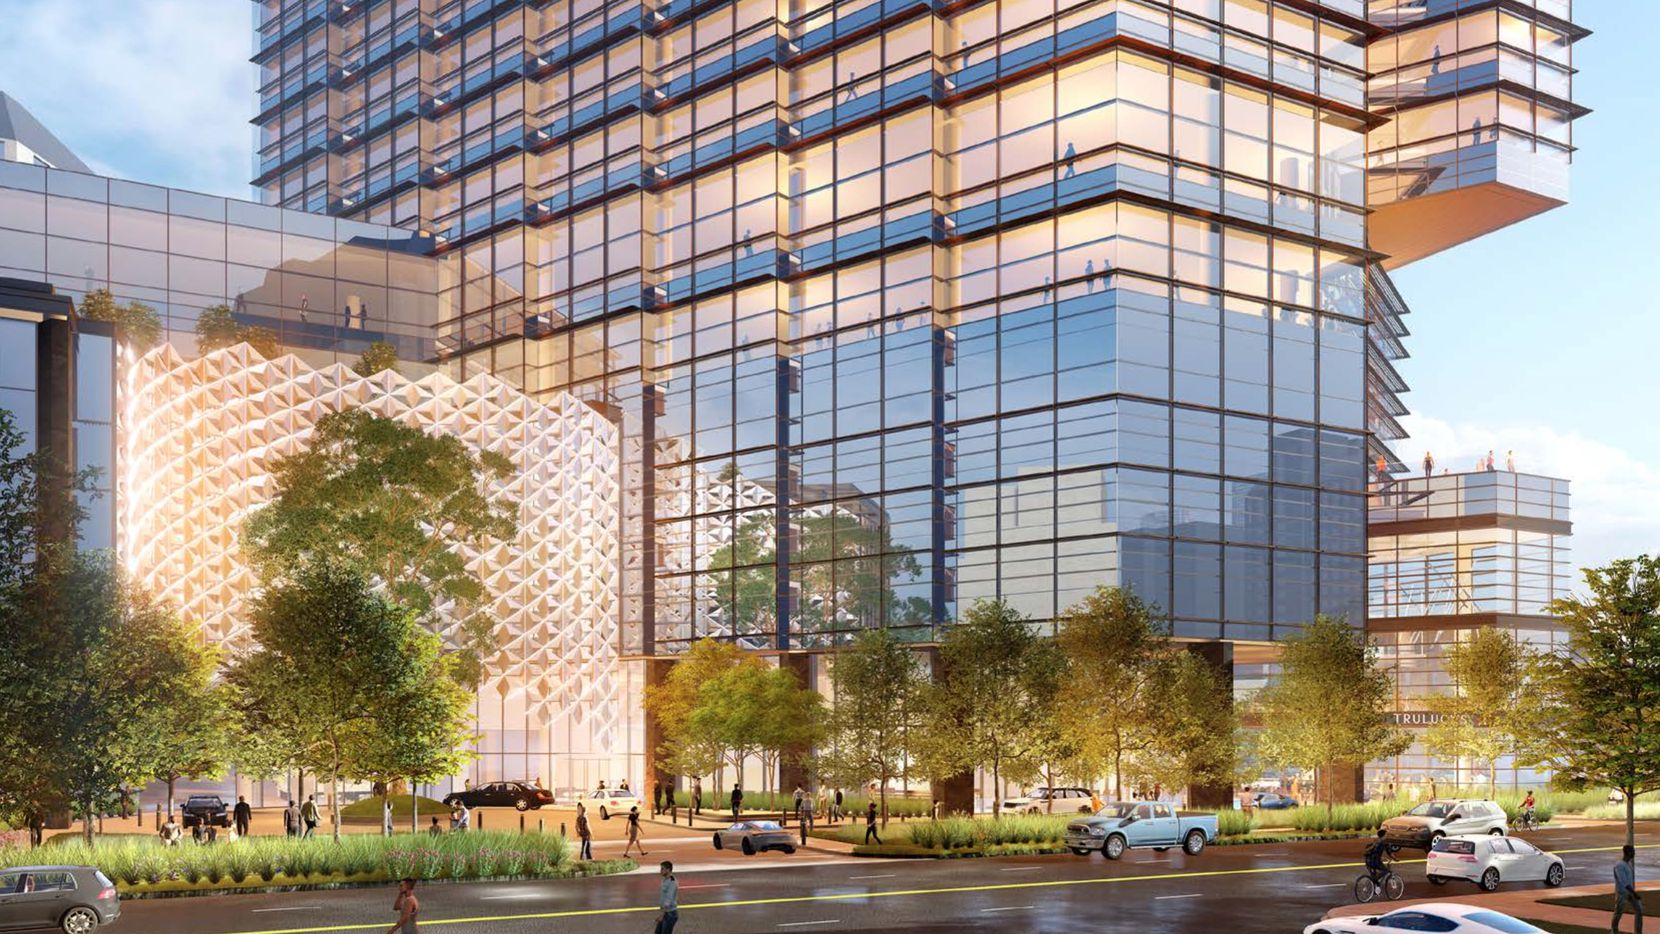 Trammell Crow Co.'s 2401 McKinney tower will be built at Maple and McKinney Avenues.